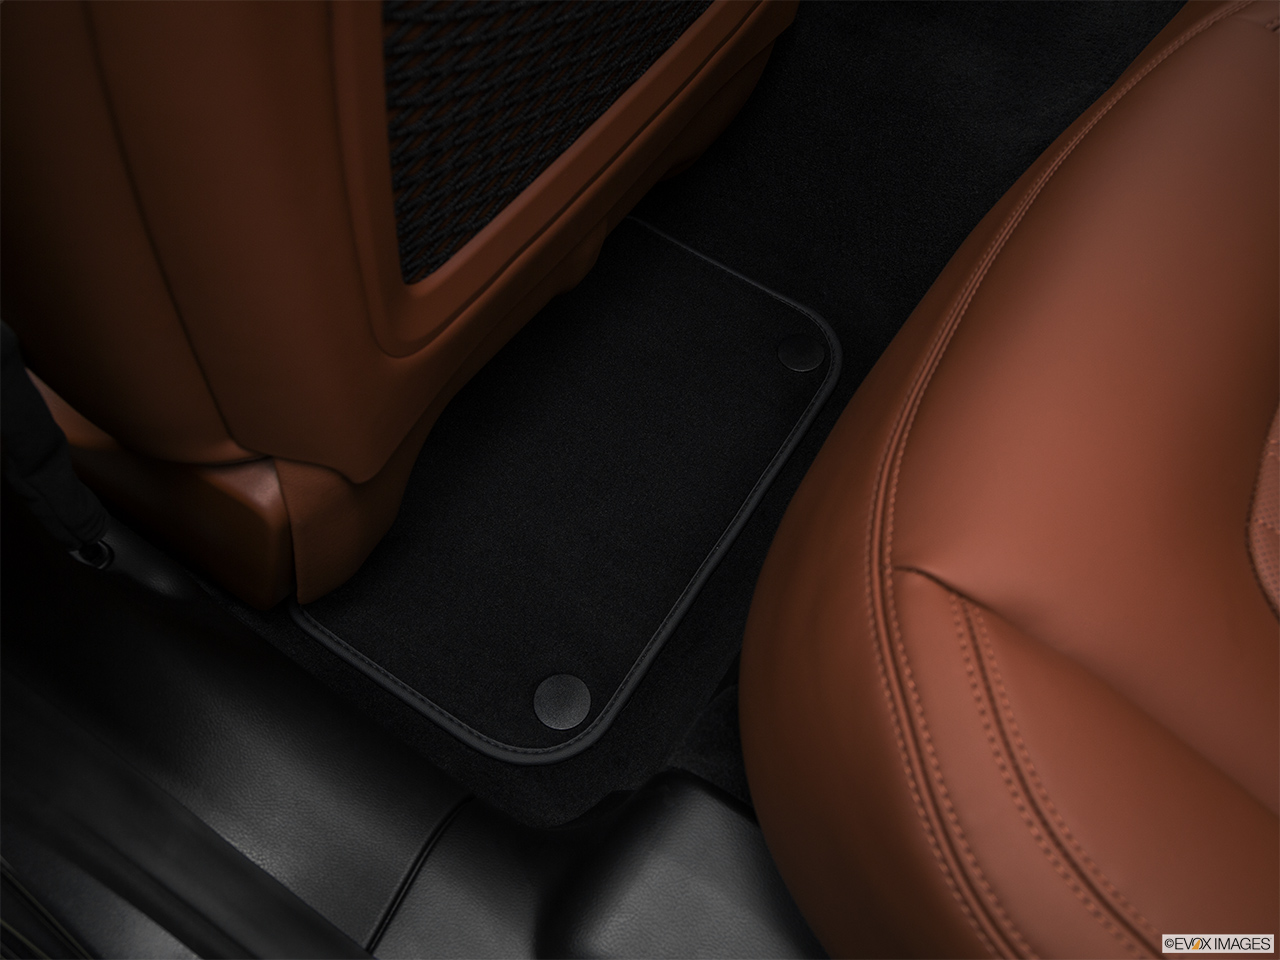 2018 Maserati Ghibli  S Granlusso Rear driver's side floor mat. Mid-seat level from outside looking in.